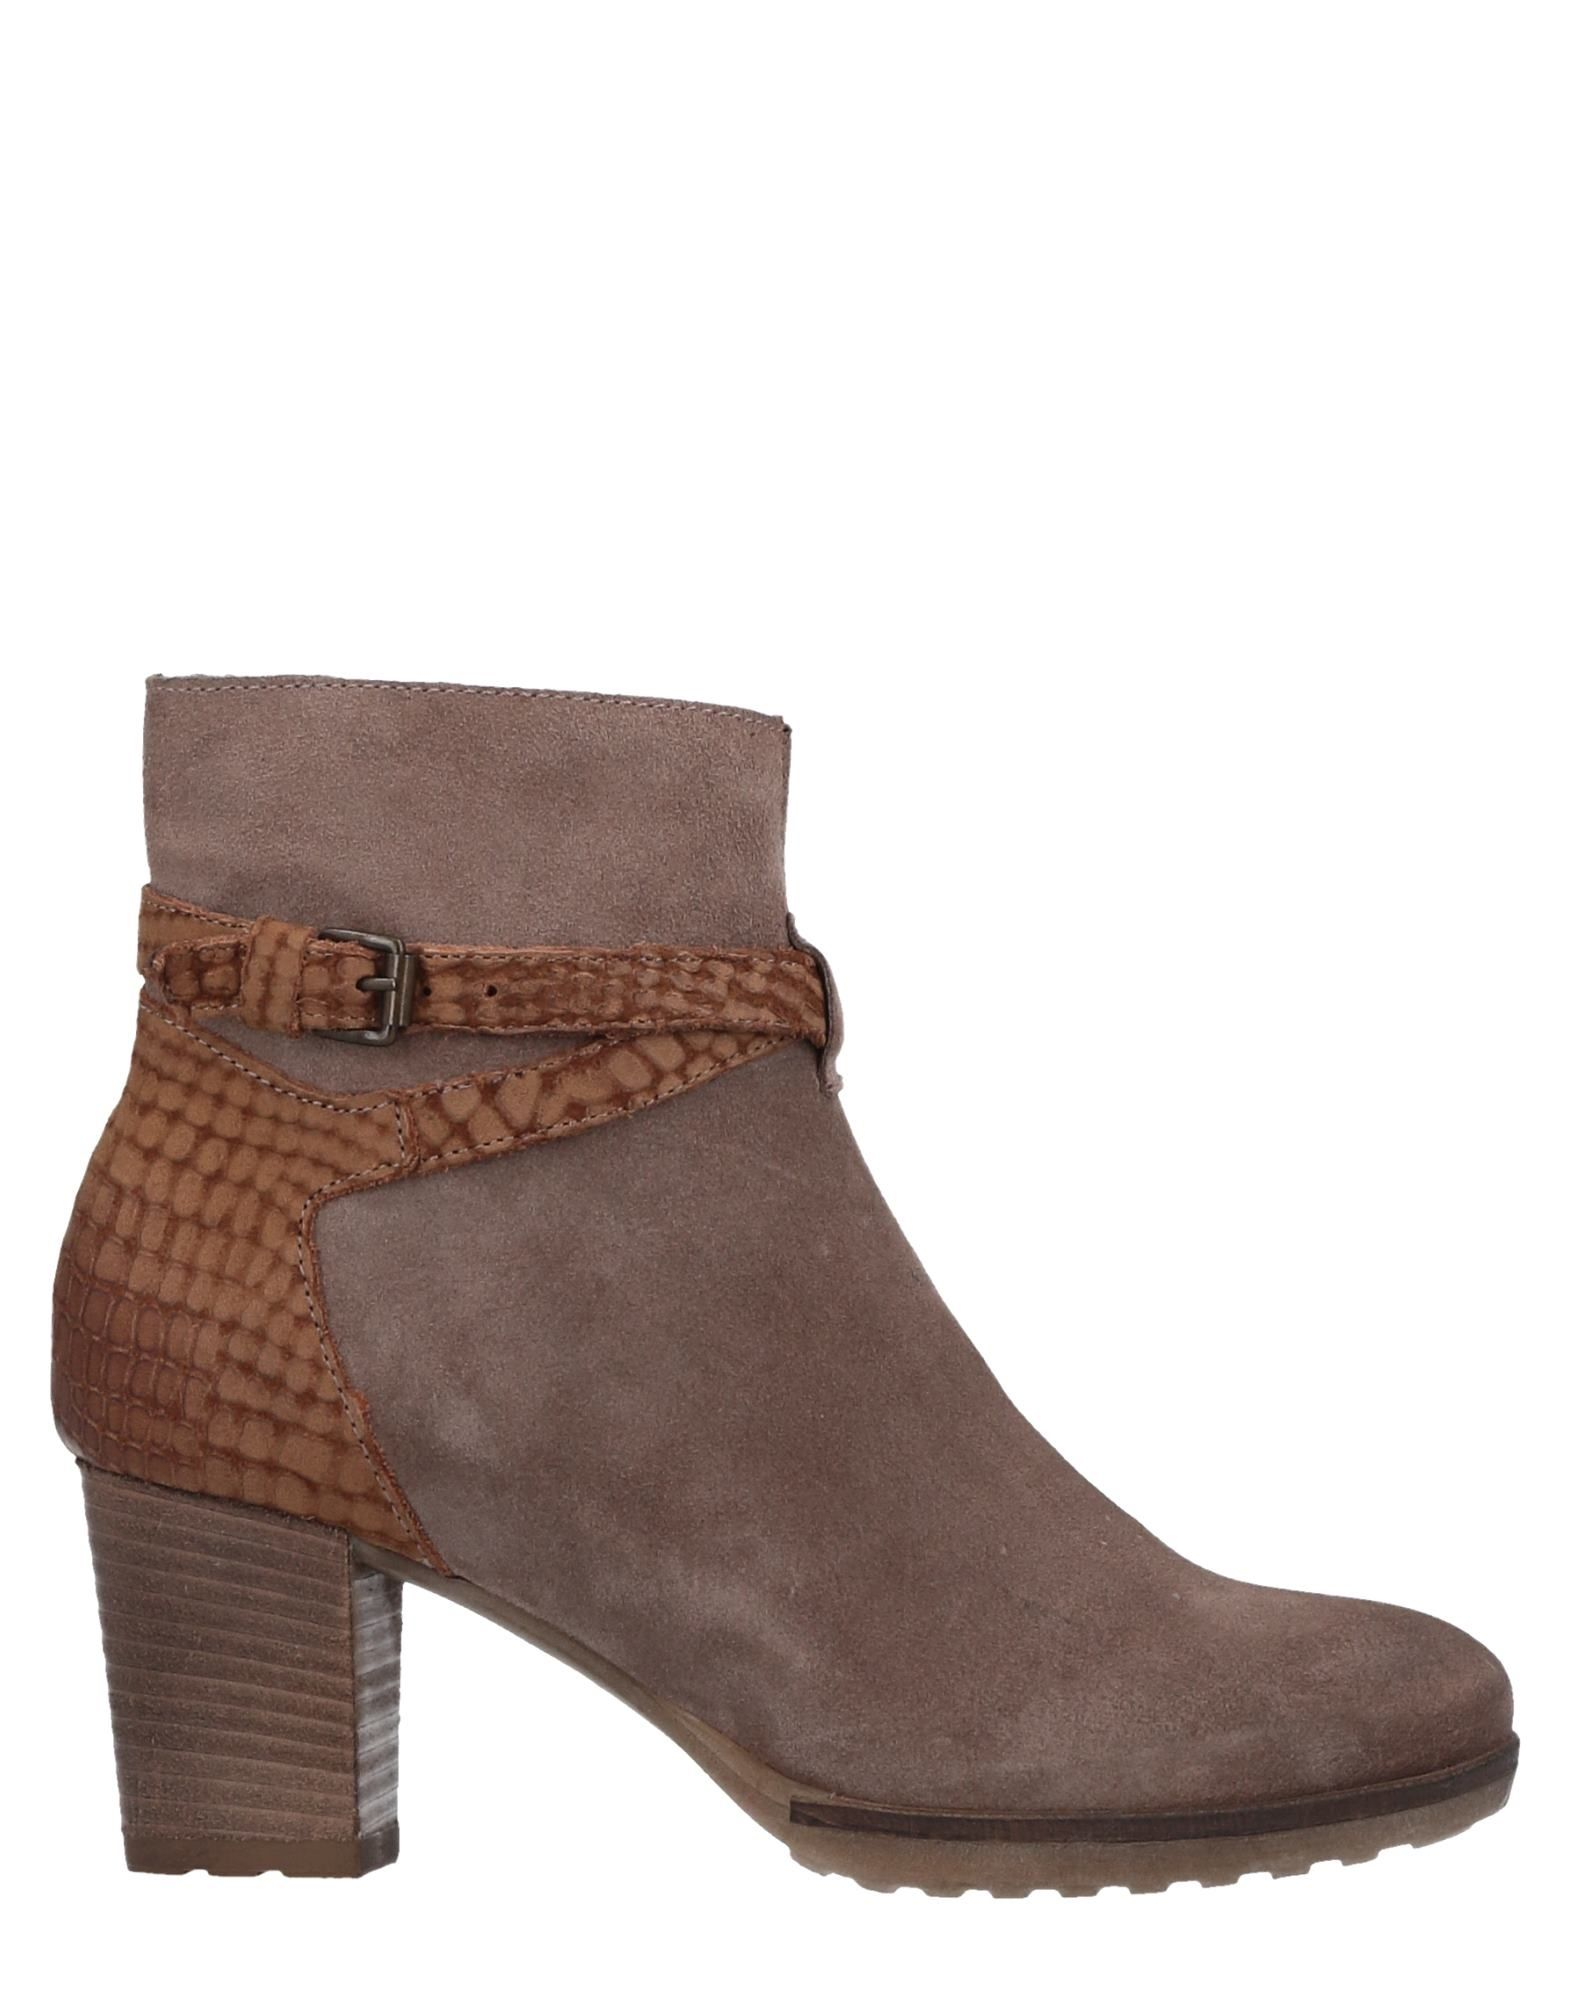 MANAS Ankle Boot in Khaki